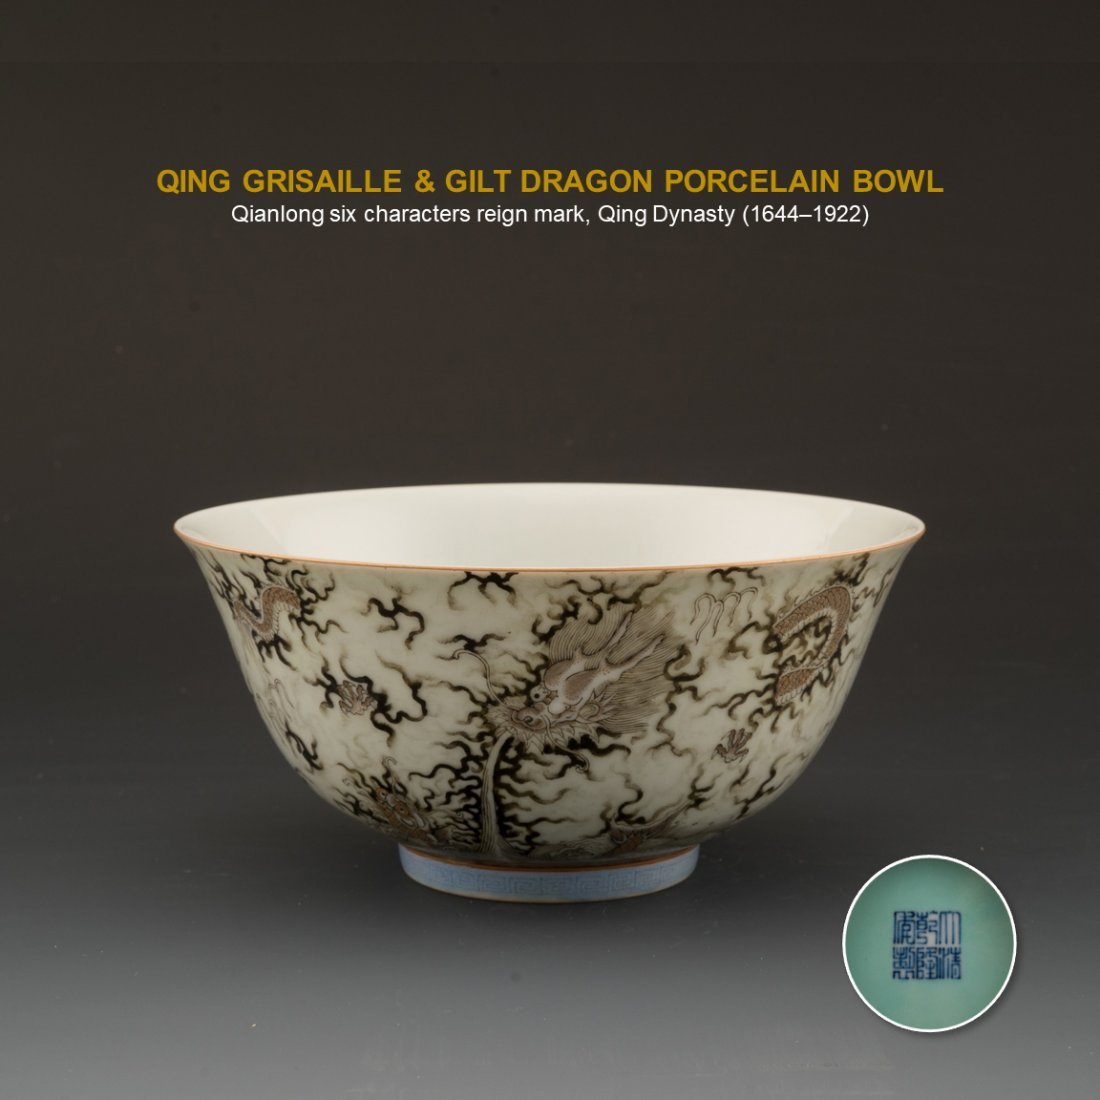 QING DRAGON OVER CLOUDS PORCELAIN BOWL